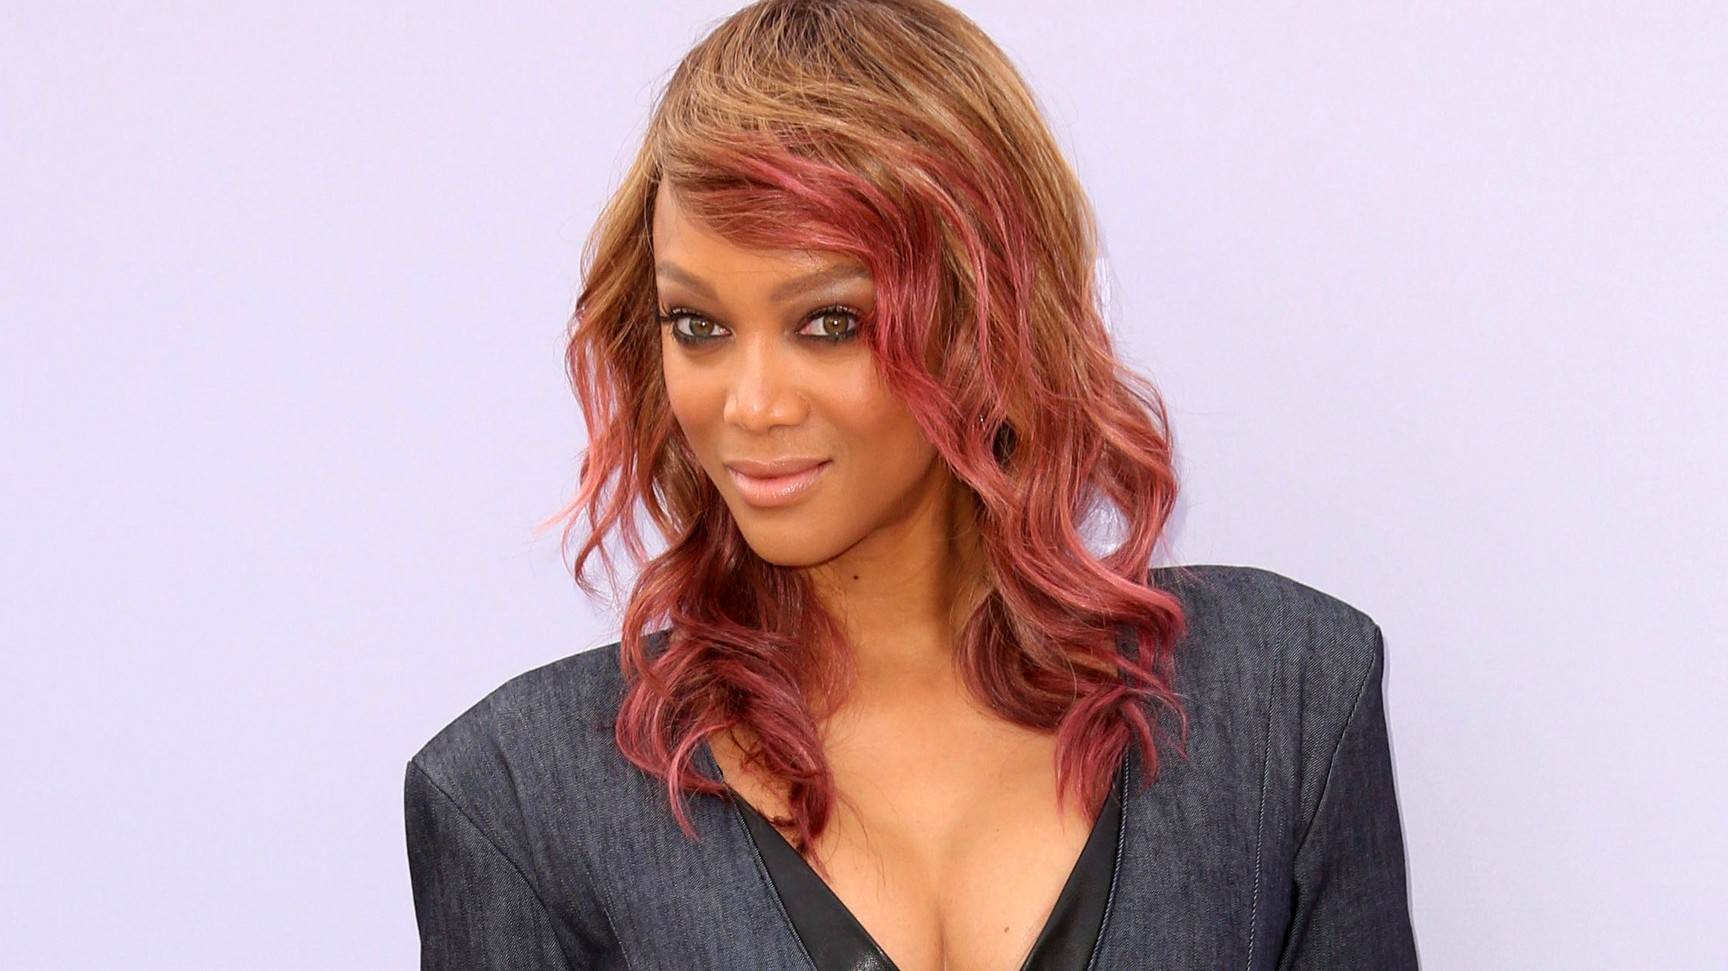 Tyra Banks Talks About Her Experience As An Early Model